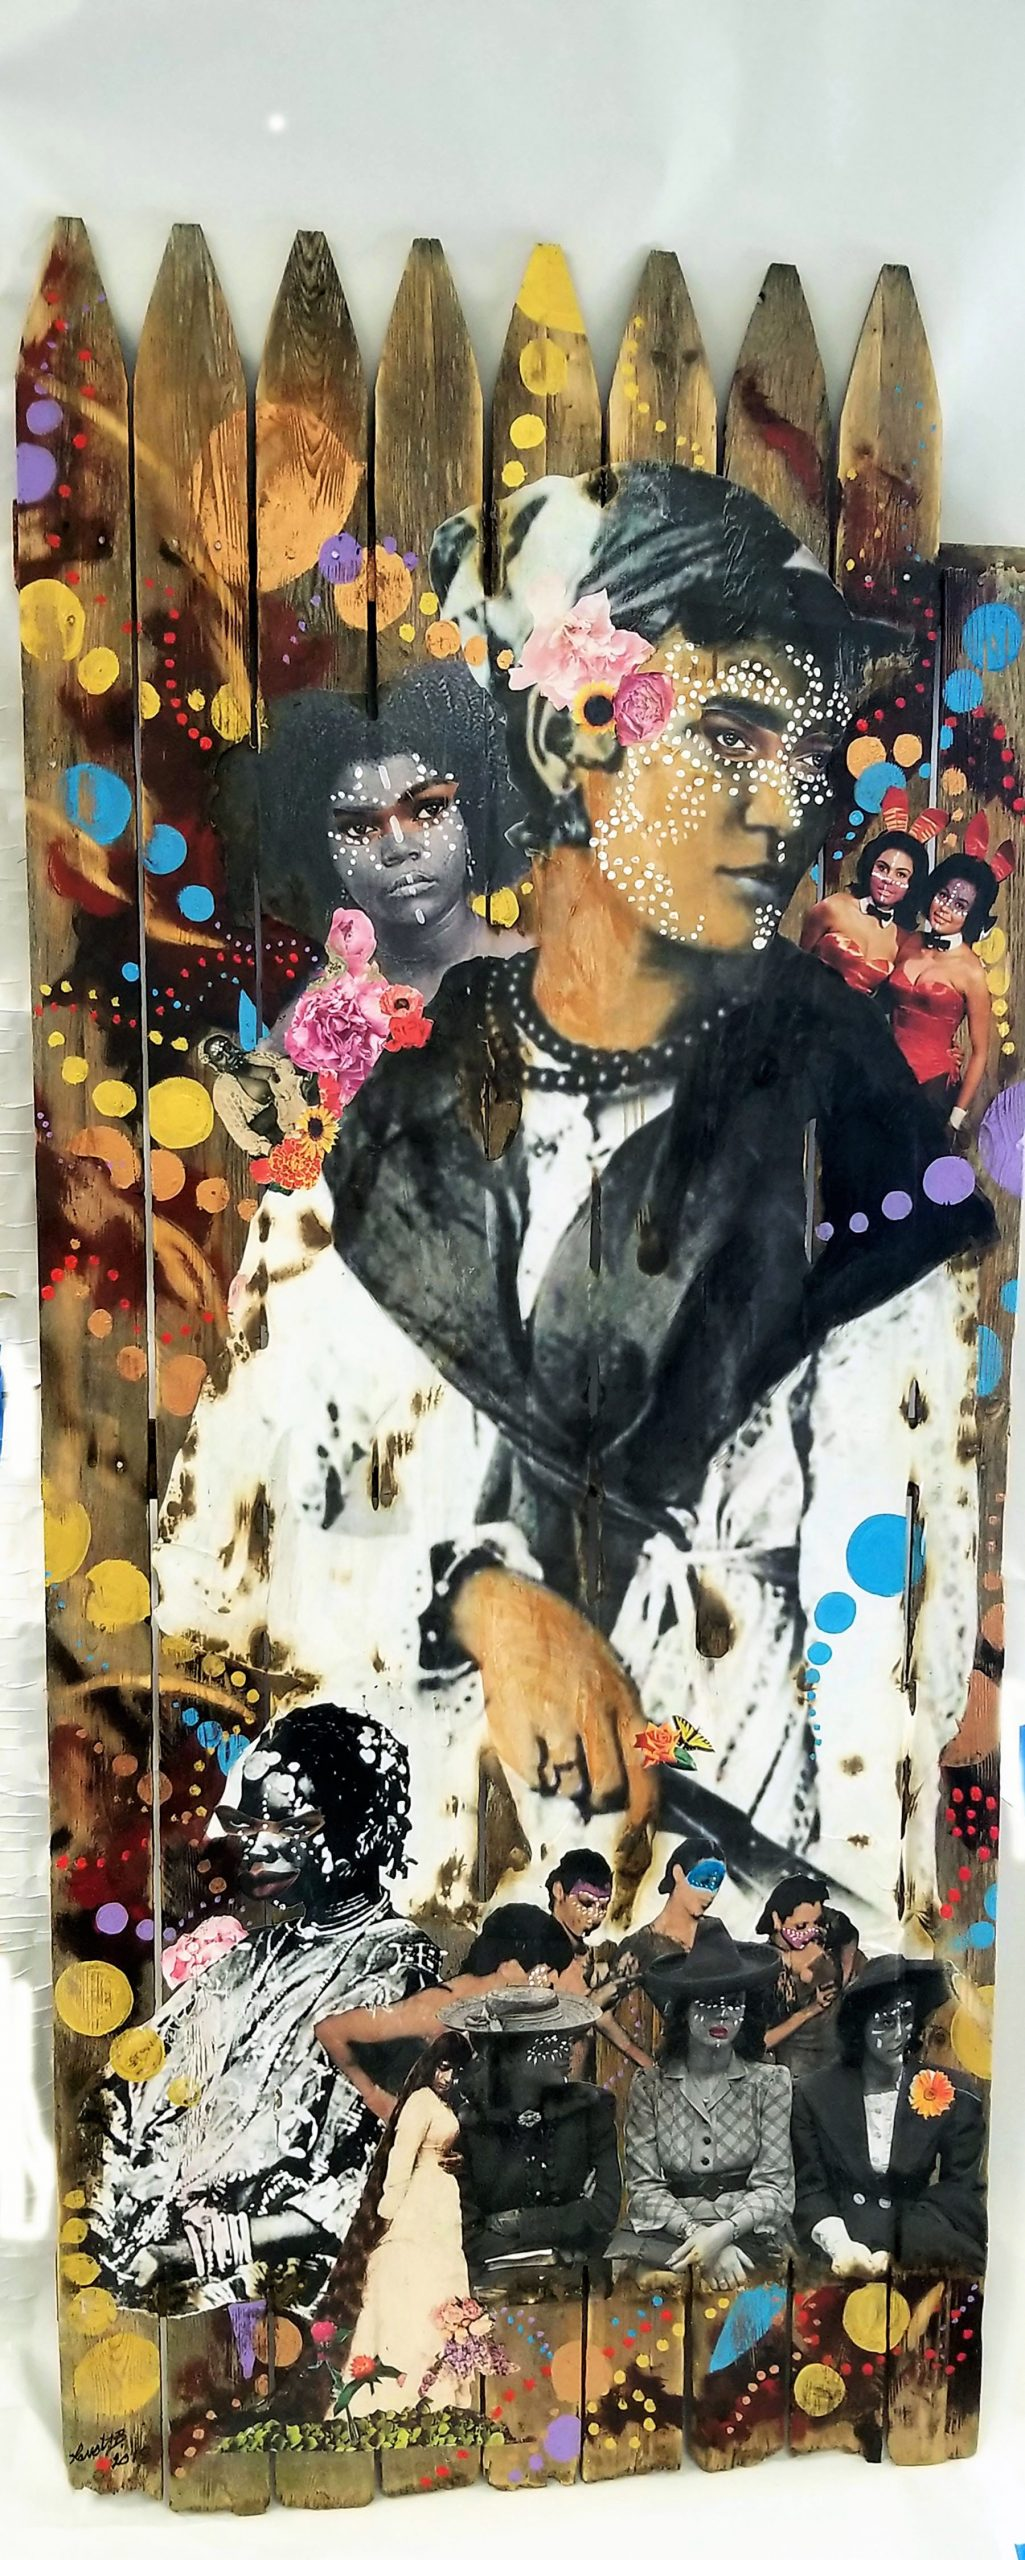 Mixed media of Black women throughout history.